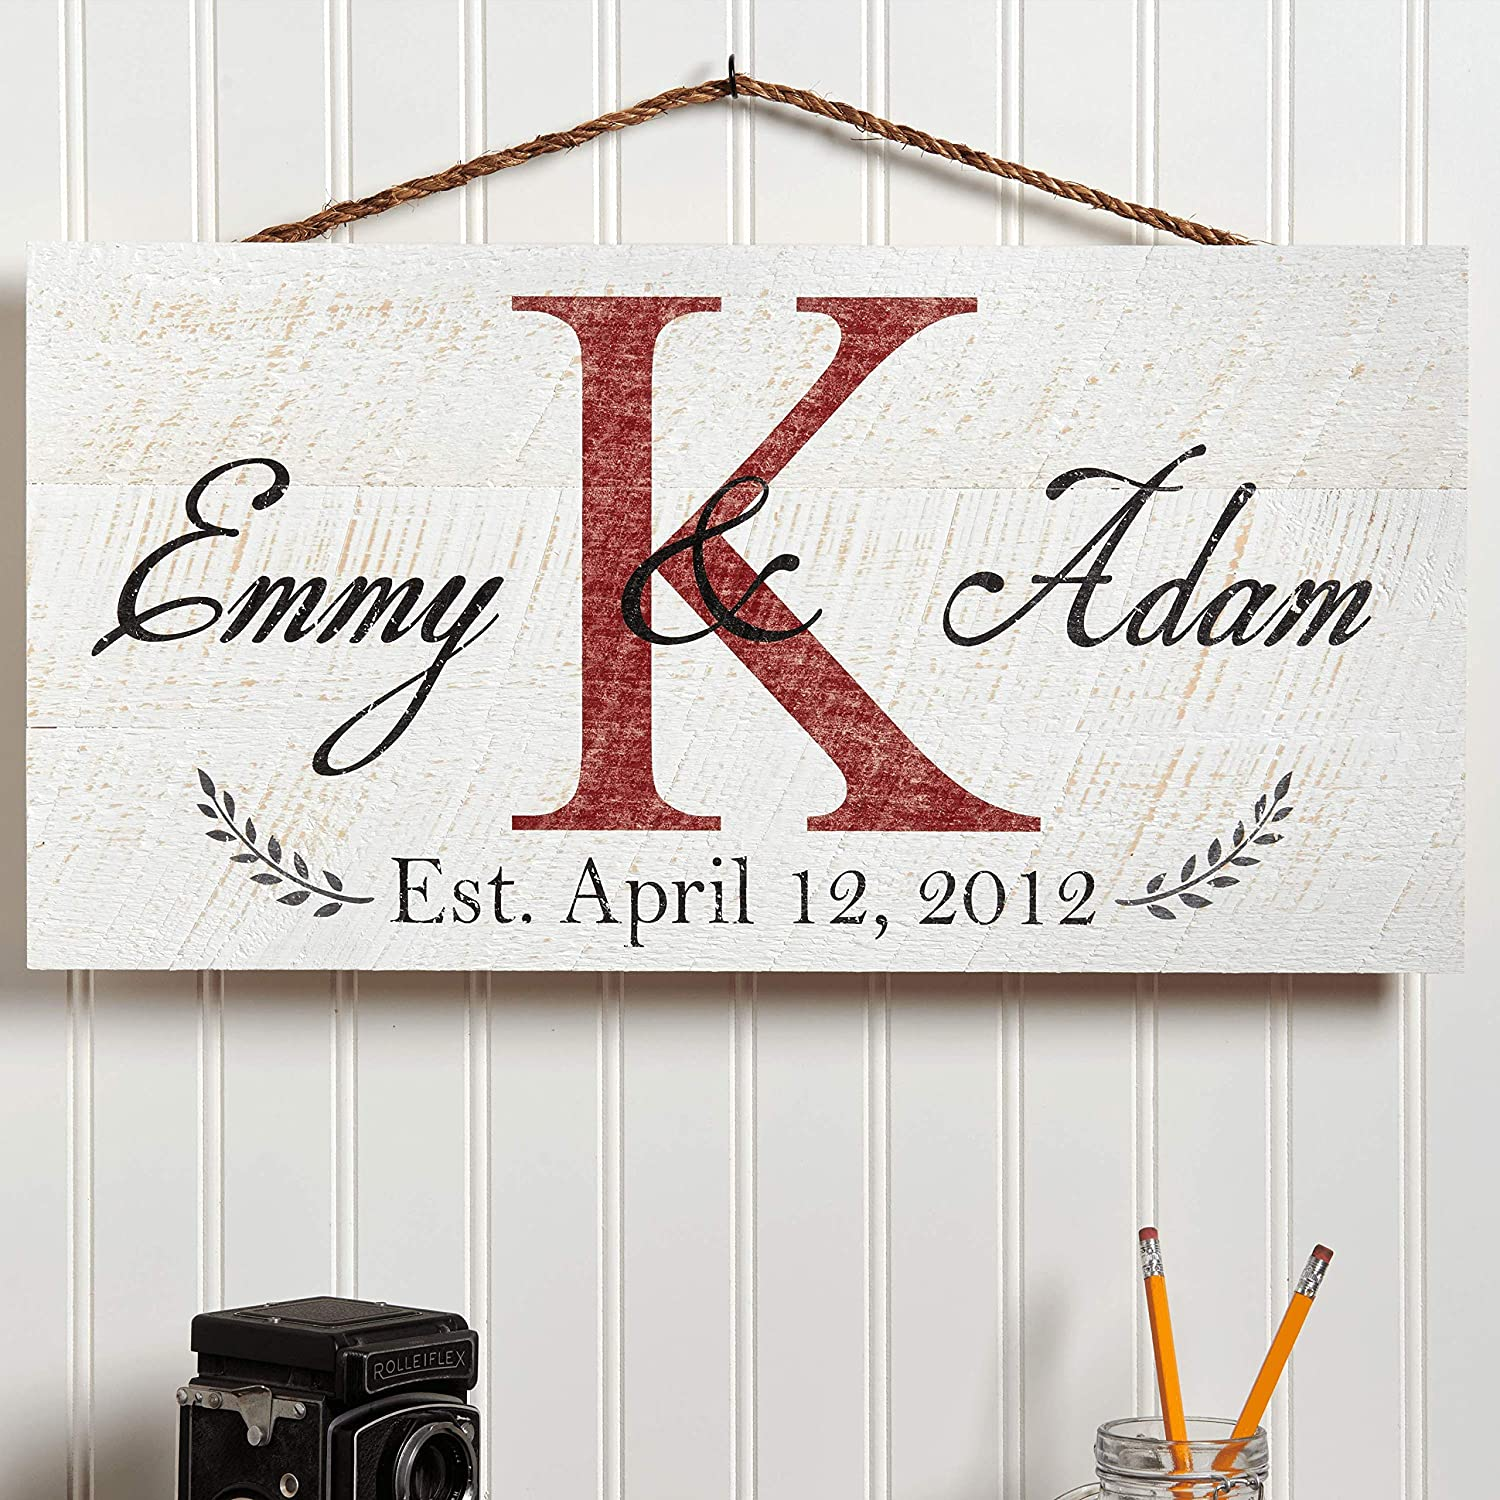 """Artblox Personalized Rustic Family Wood Sign Home Decor, Custom Couple Names, Family Initials & Established Date, Real Vintage Barn Wood Farmhouse Style Wooden Wall Art Country Pallet (21"""" x 10.5"""")"""